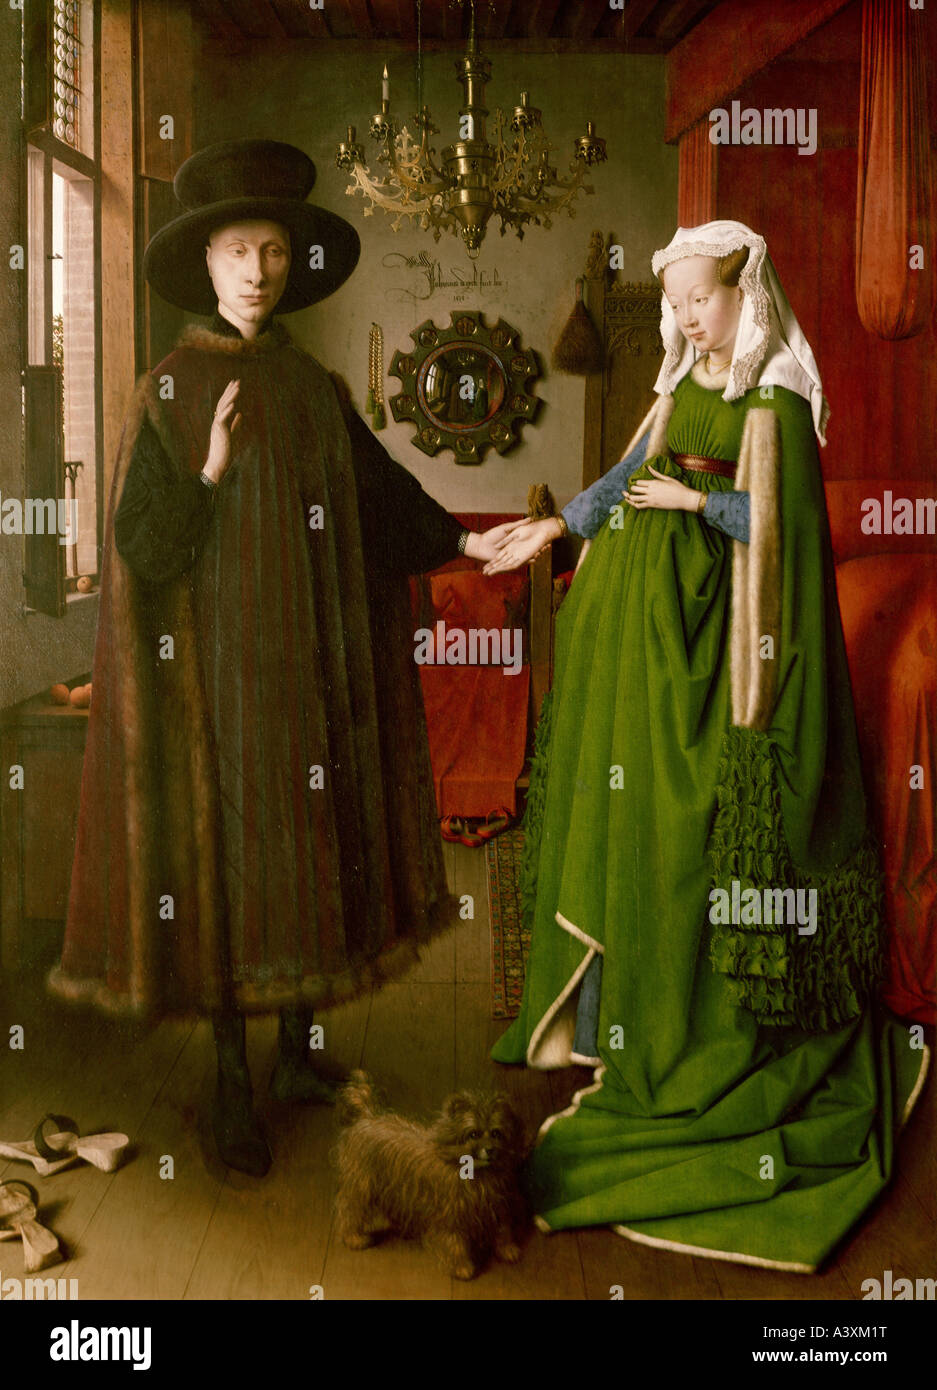 'fine arts, Eyck, Jan van, (circa 1390 - 1441), painting, 'the Arnolfini wedding', 1434, oil on panel, - Stock Image